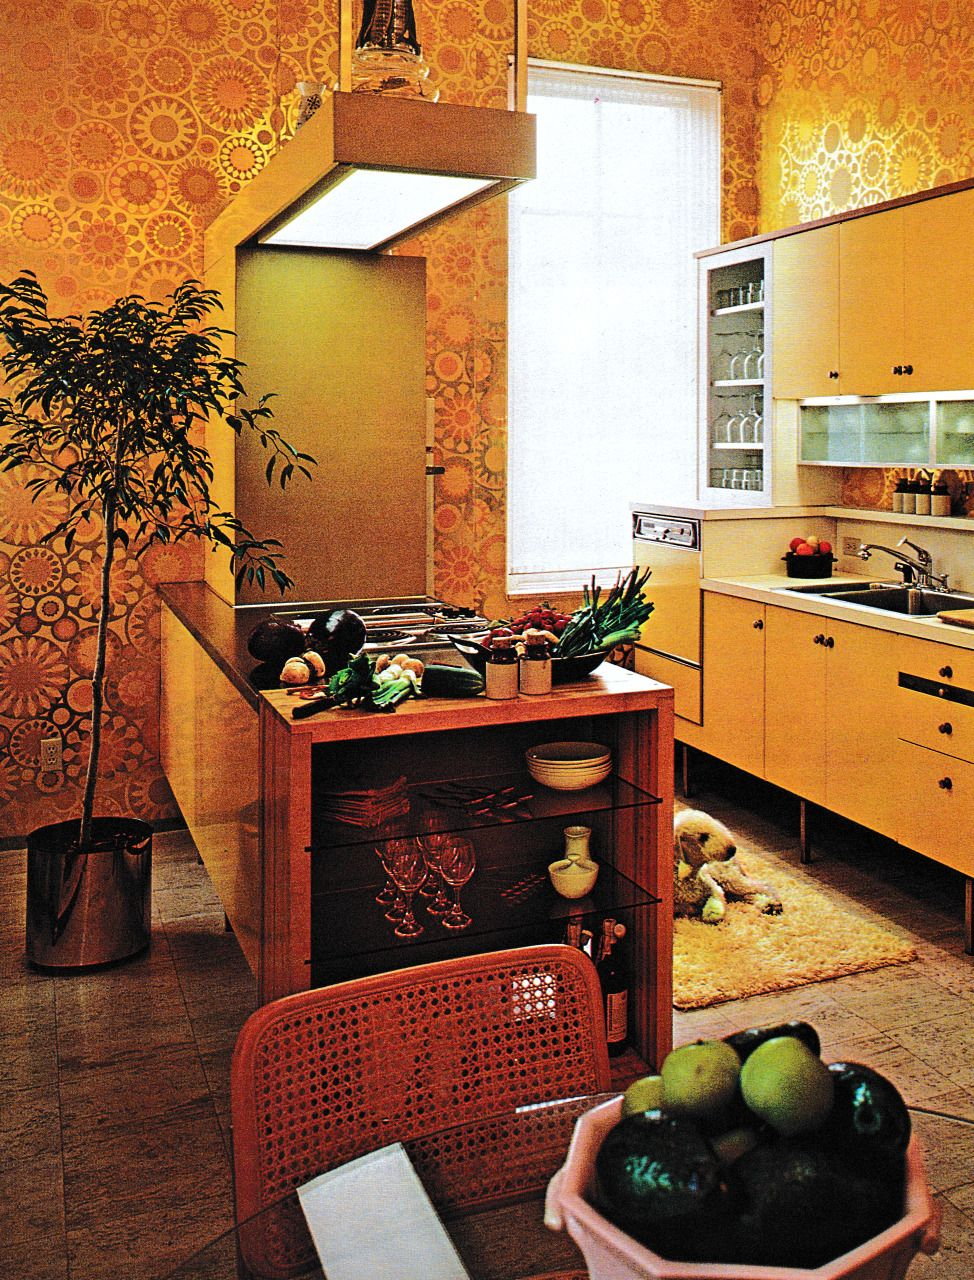 kitchen design decor 1976 with images vintage interiors 1970s decor kitchen design decor on kitchen interior classic id=70224